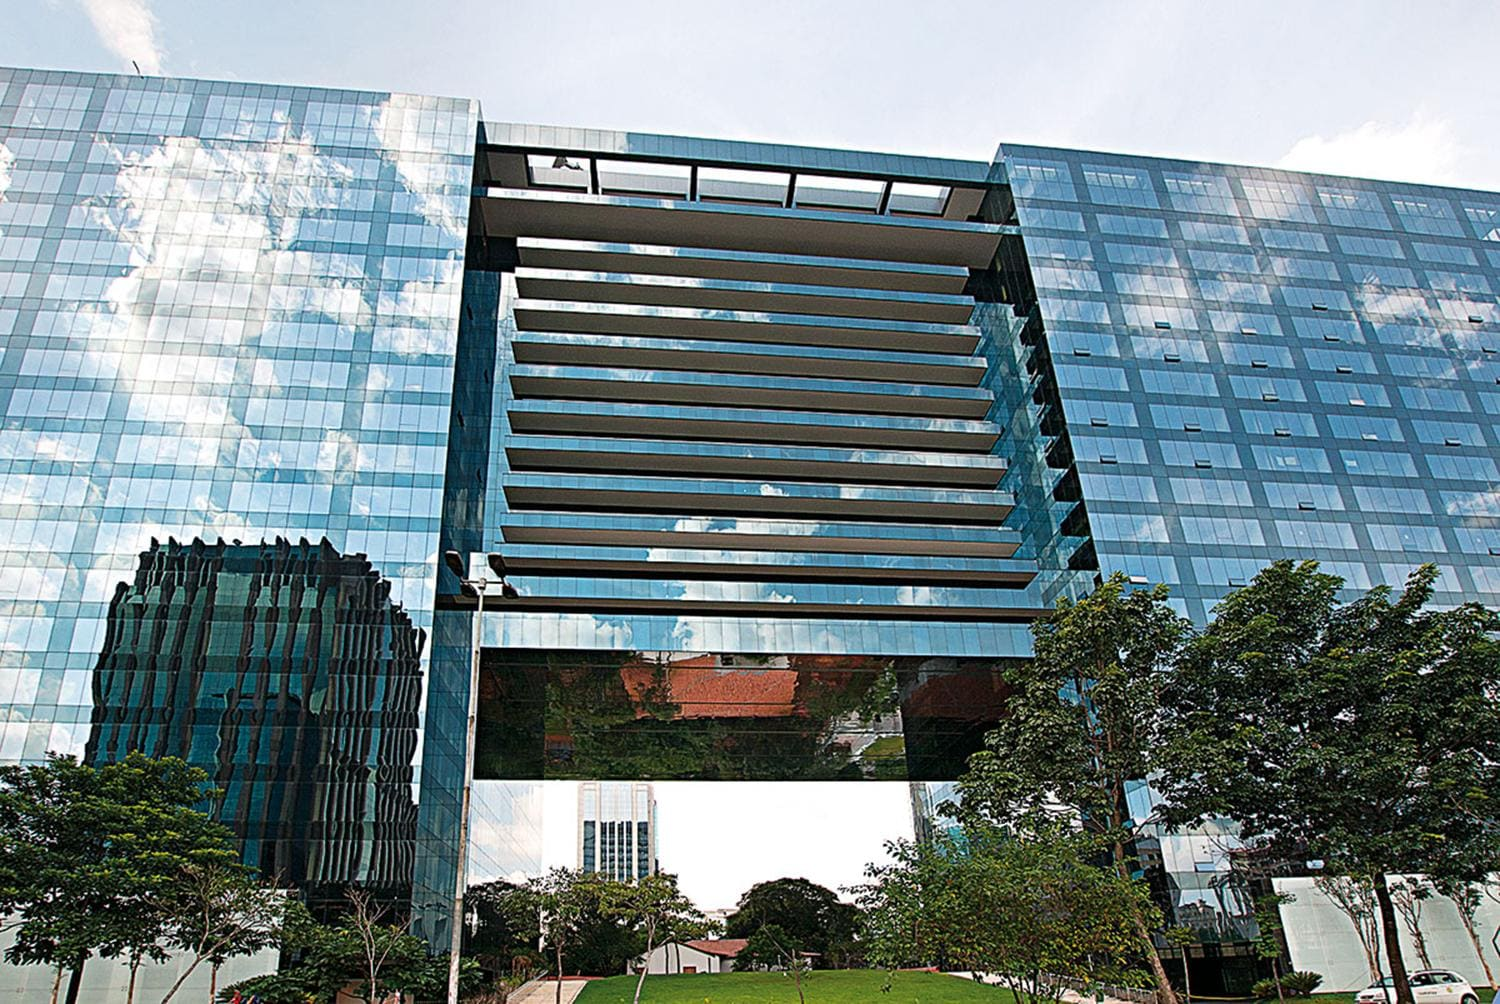 Sao Paulo Brazil office buillding